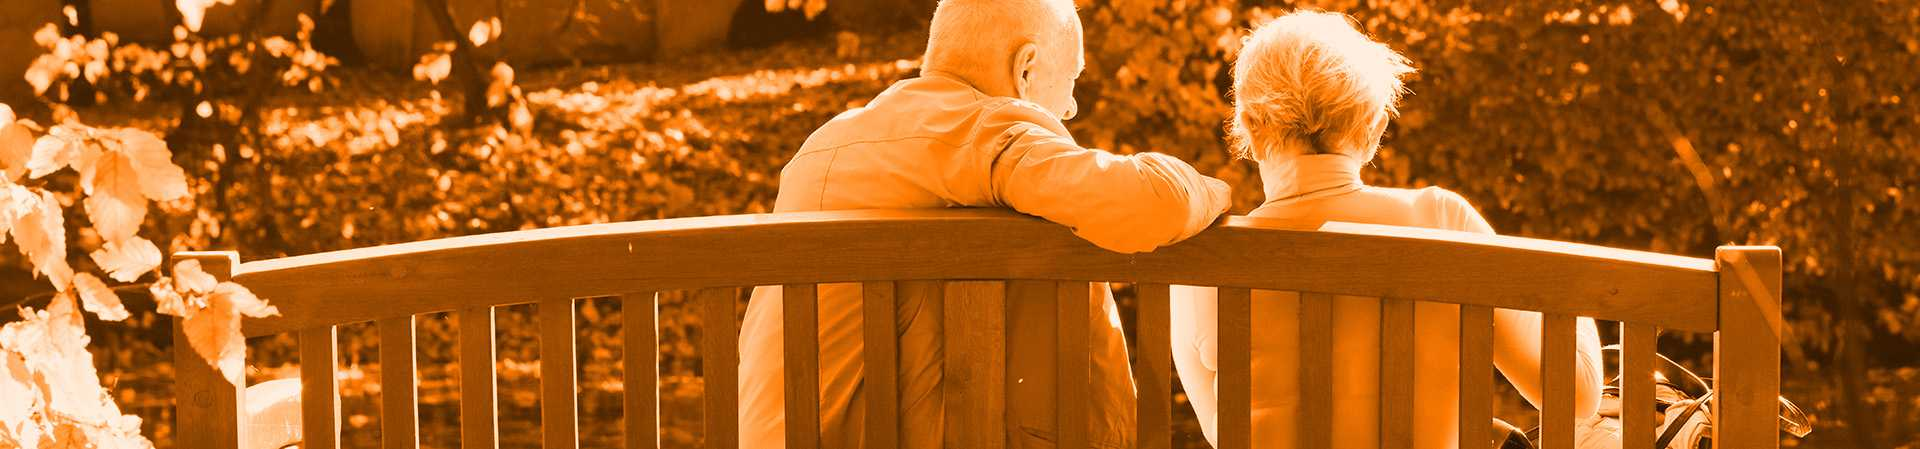 What is the price of elderly care?